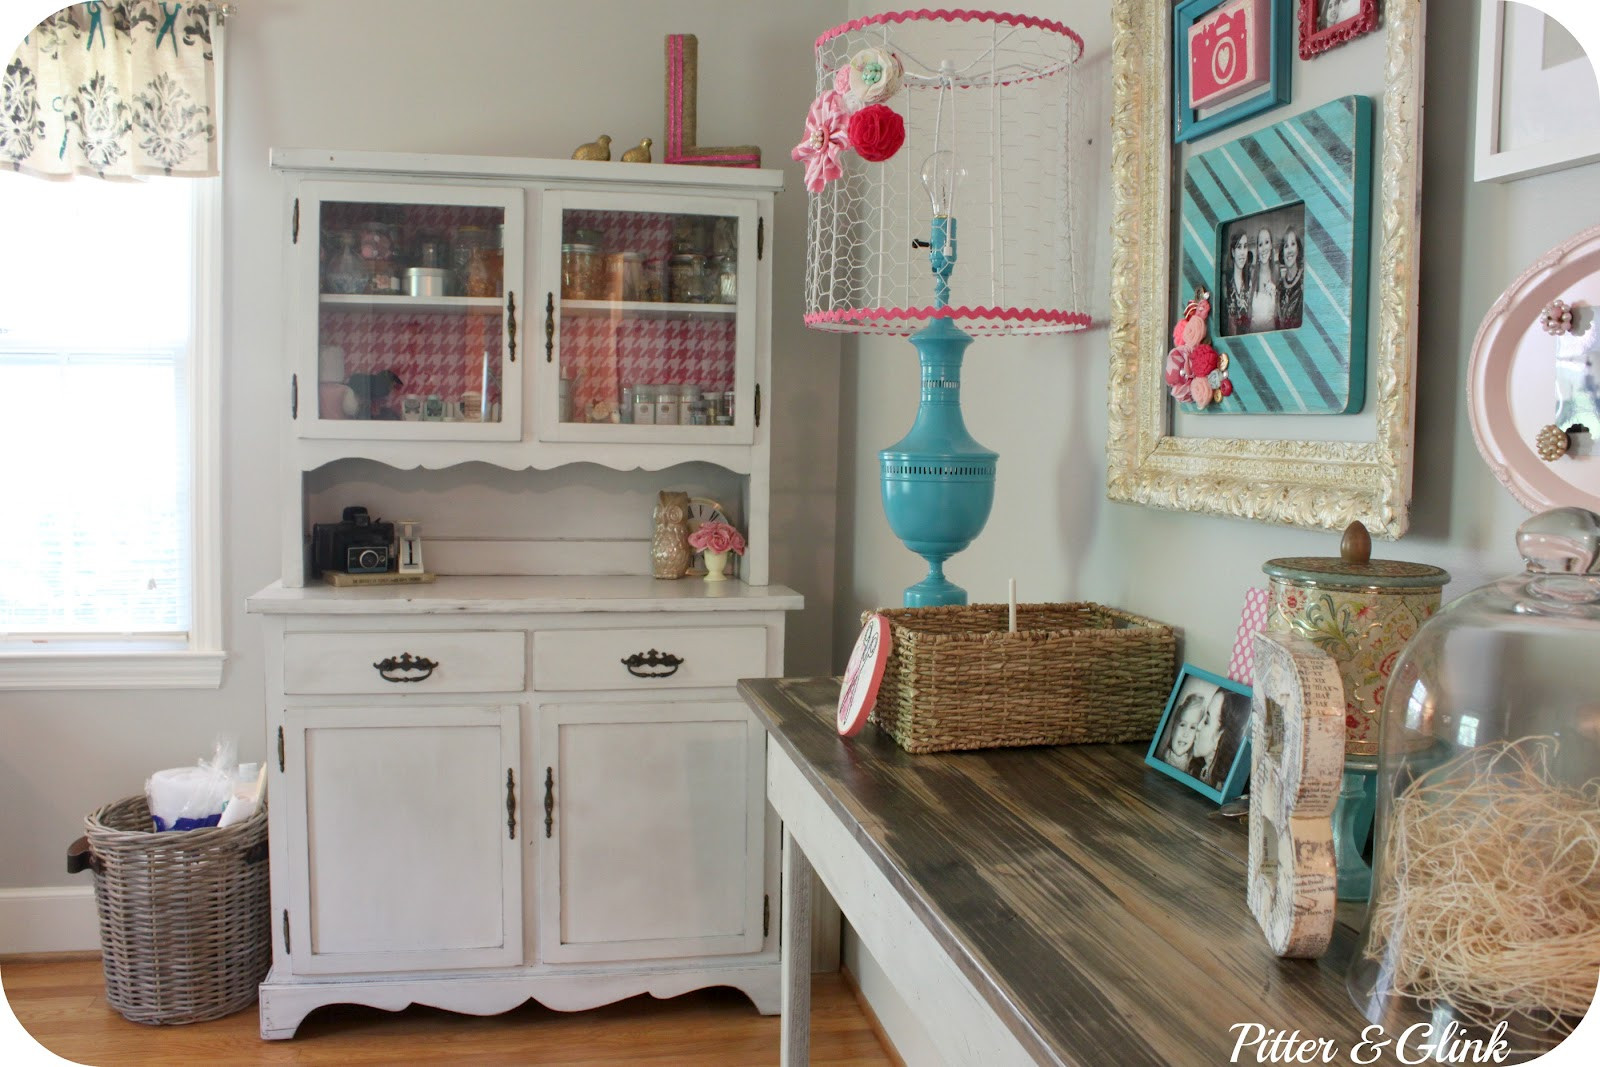 Best ideas about Craft Room Decor . Save or Pin Craftaholics Anonymous Now.